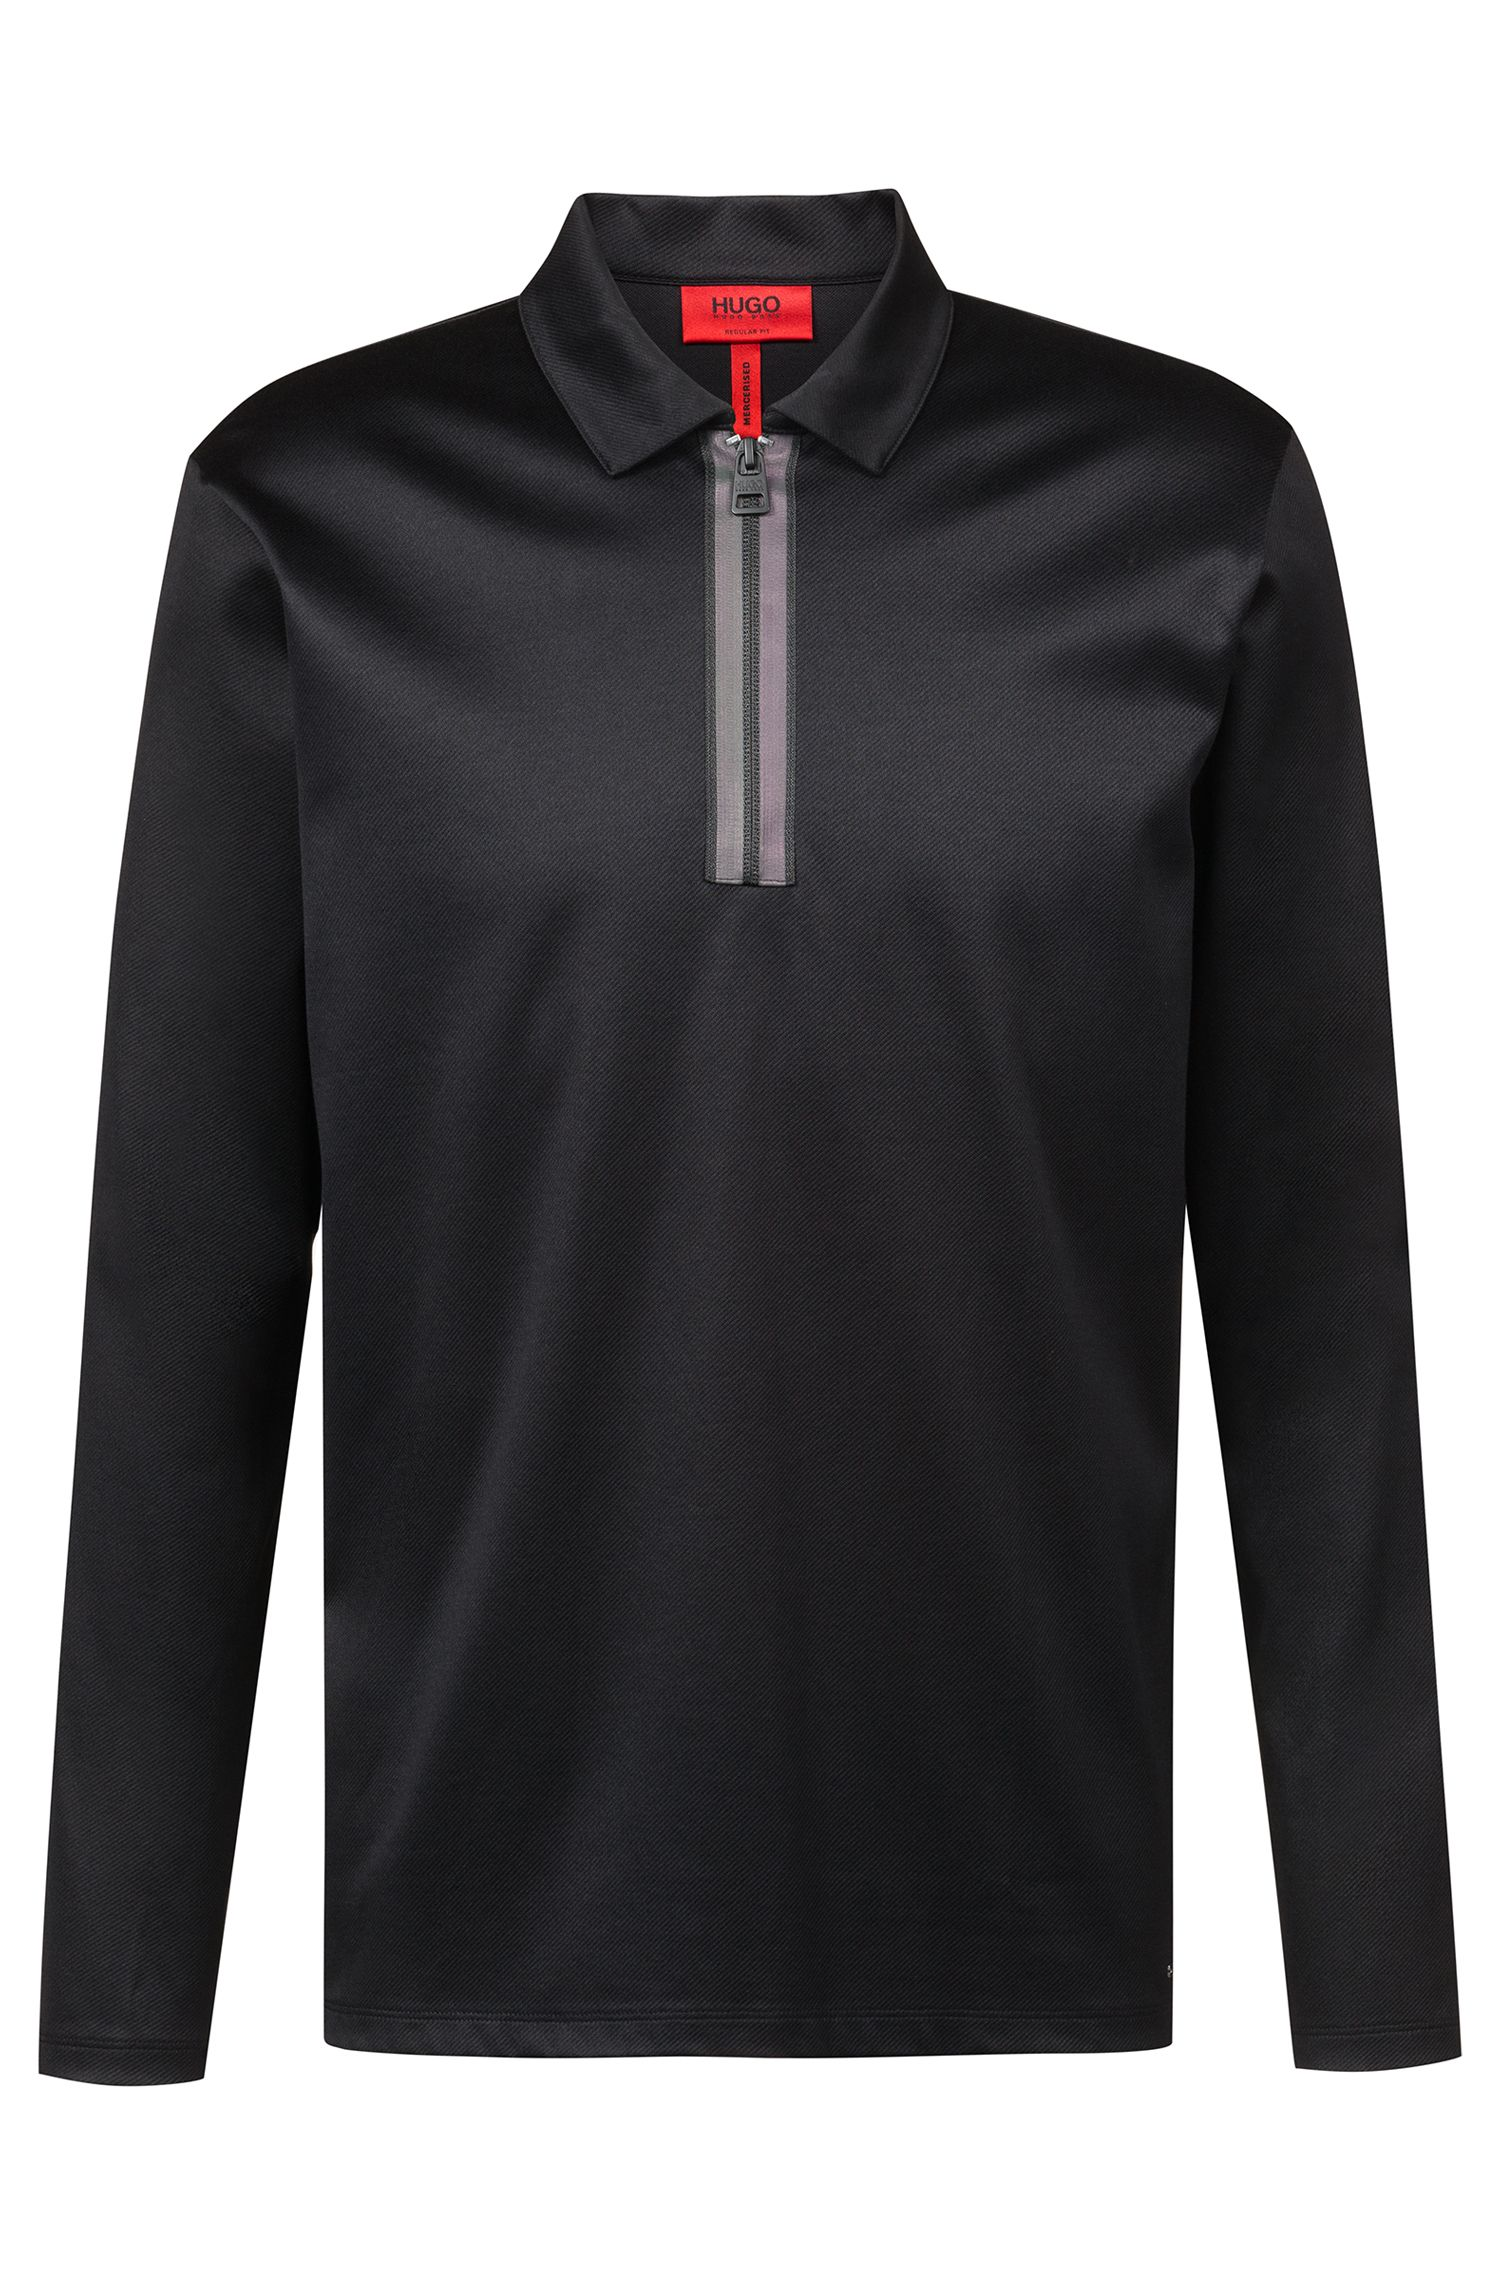 Long-sleeved polo shirt in mercerized interlock cotton, Black